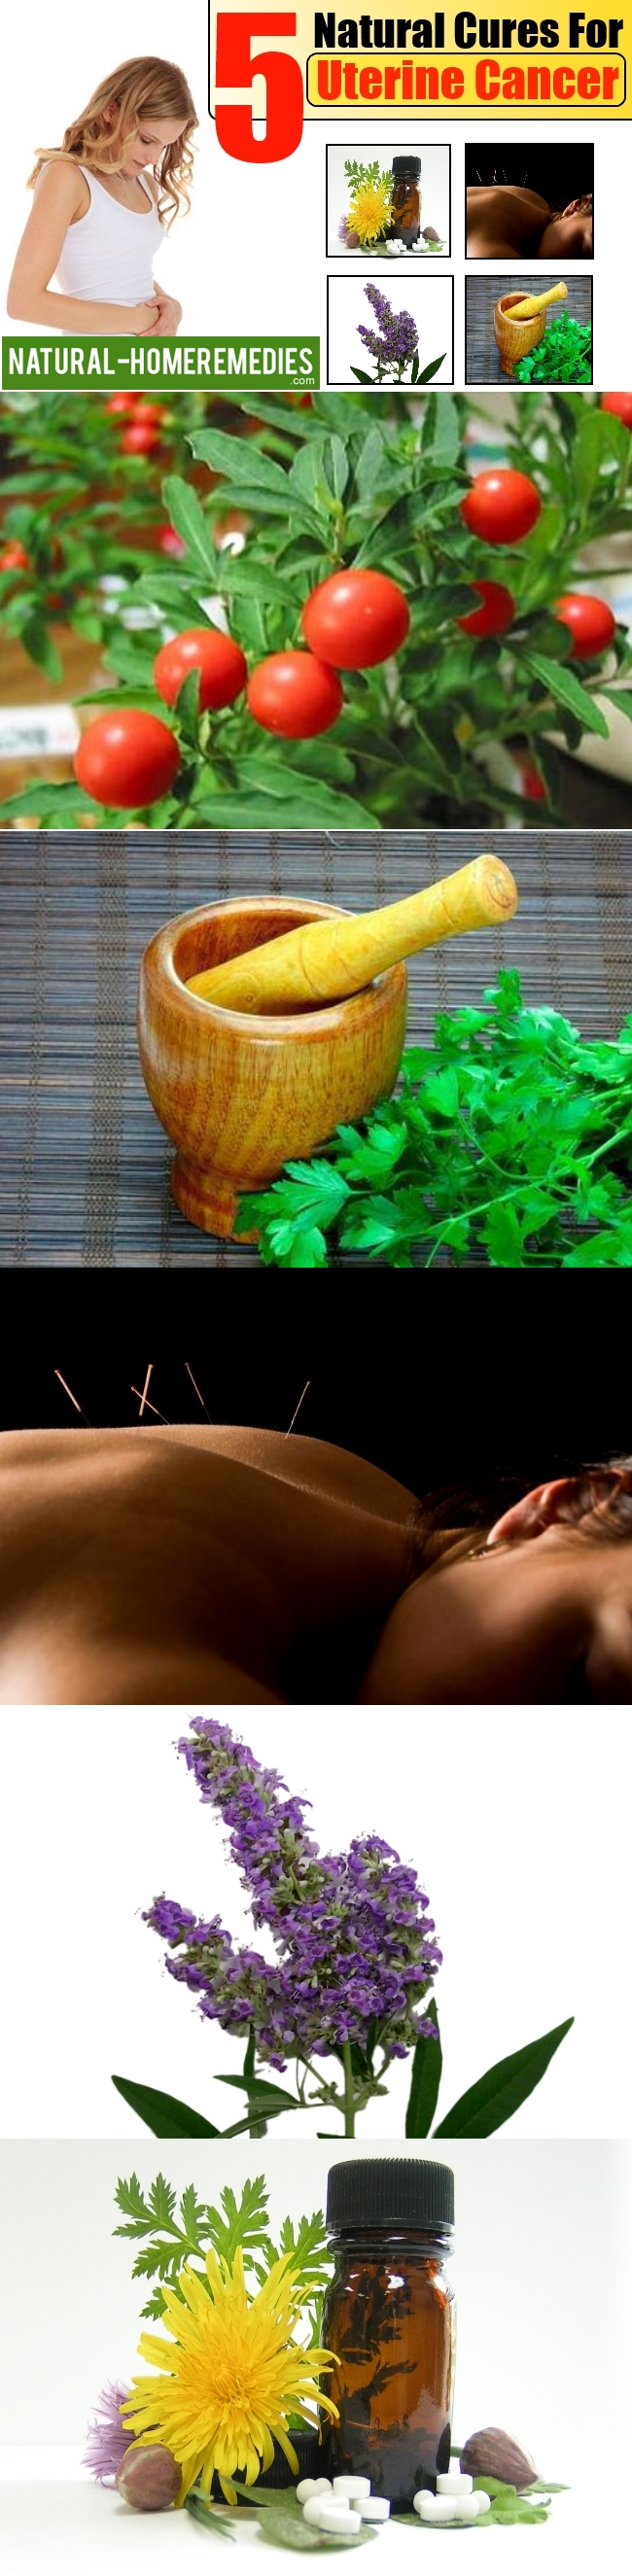 5 Natural Cures For Uterine Cancer